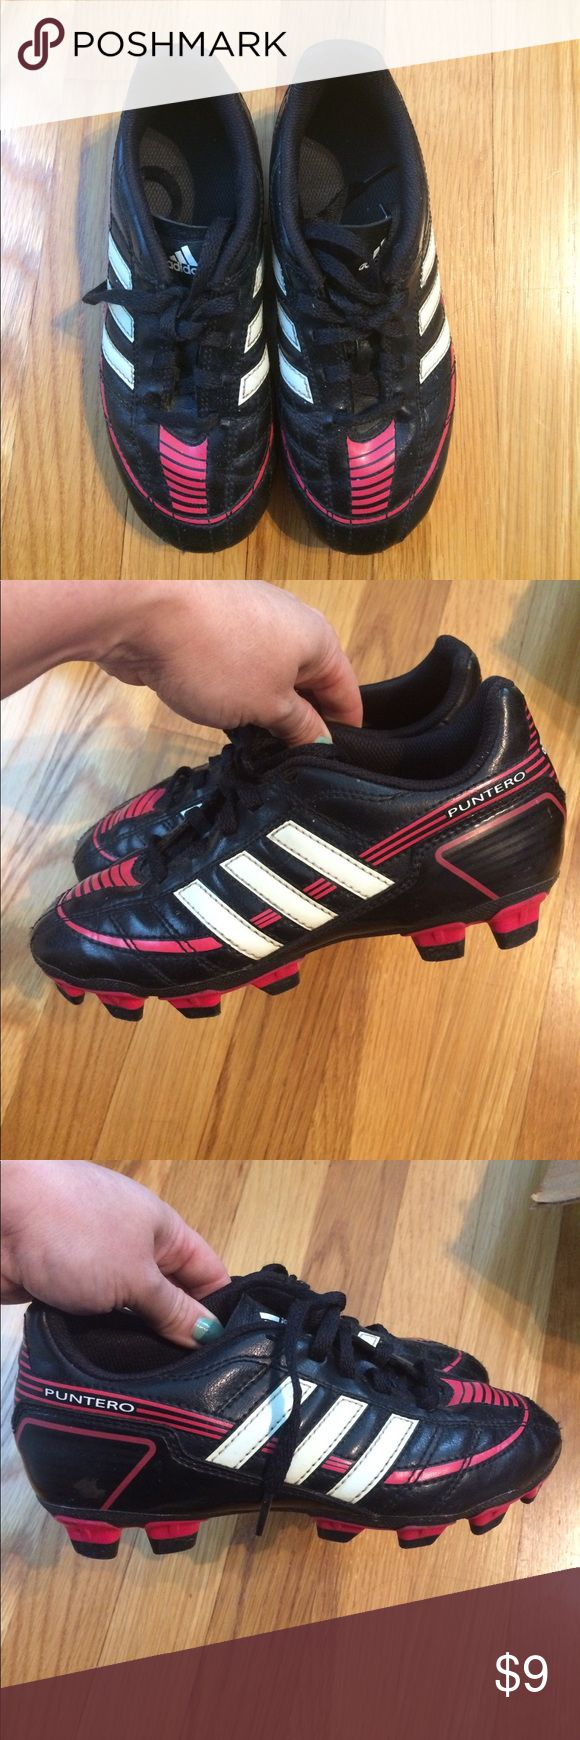 Adidas Girls Soccer Cleats 1 Puntero ⚽️ Adidas Girls Soccer Cleats 1 Puntero black pink white used for 1 season of youth ⚽️ soccer. adidas Shoes